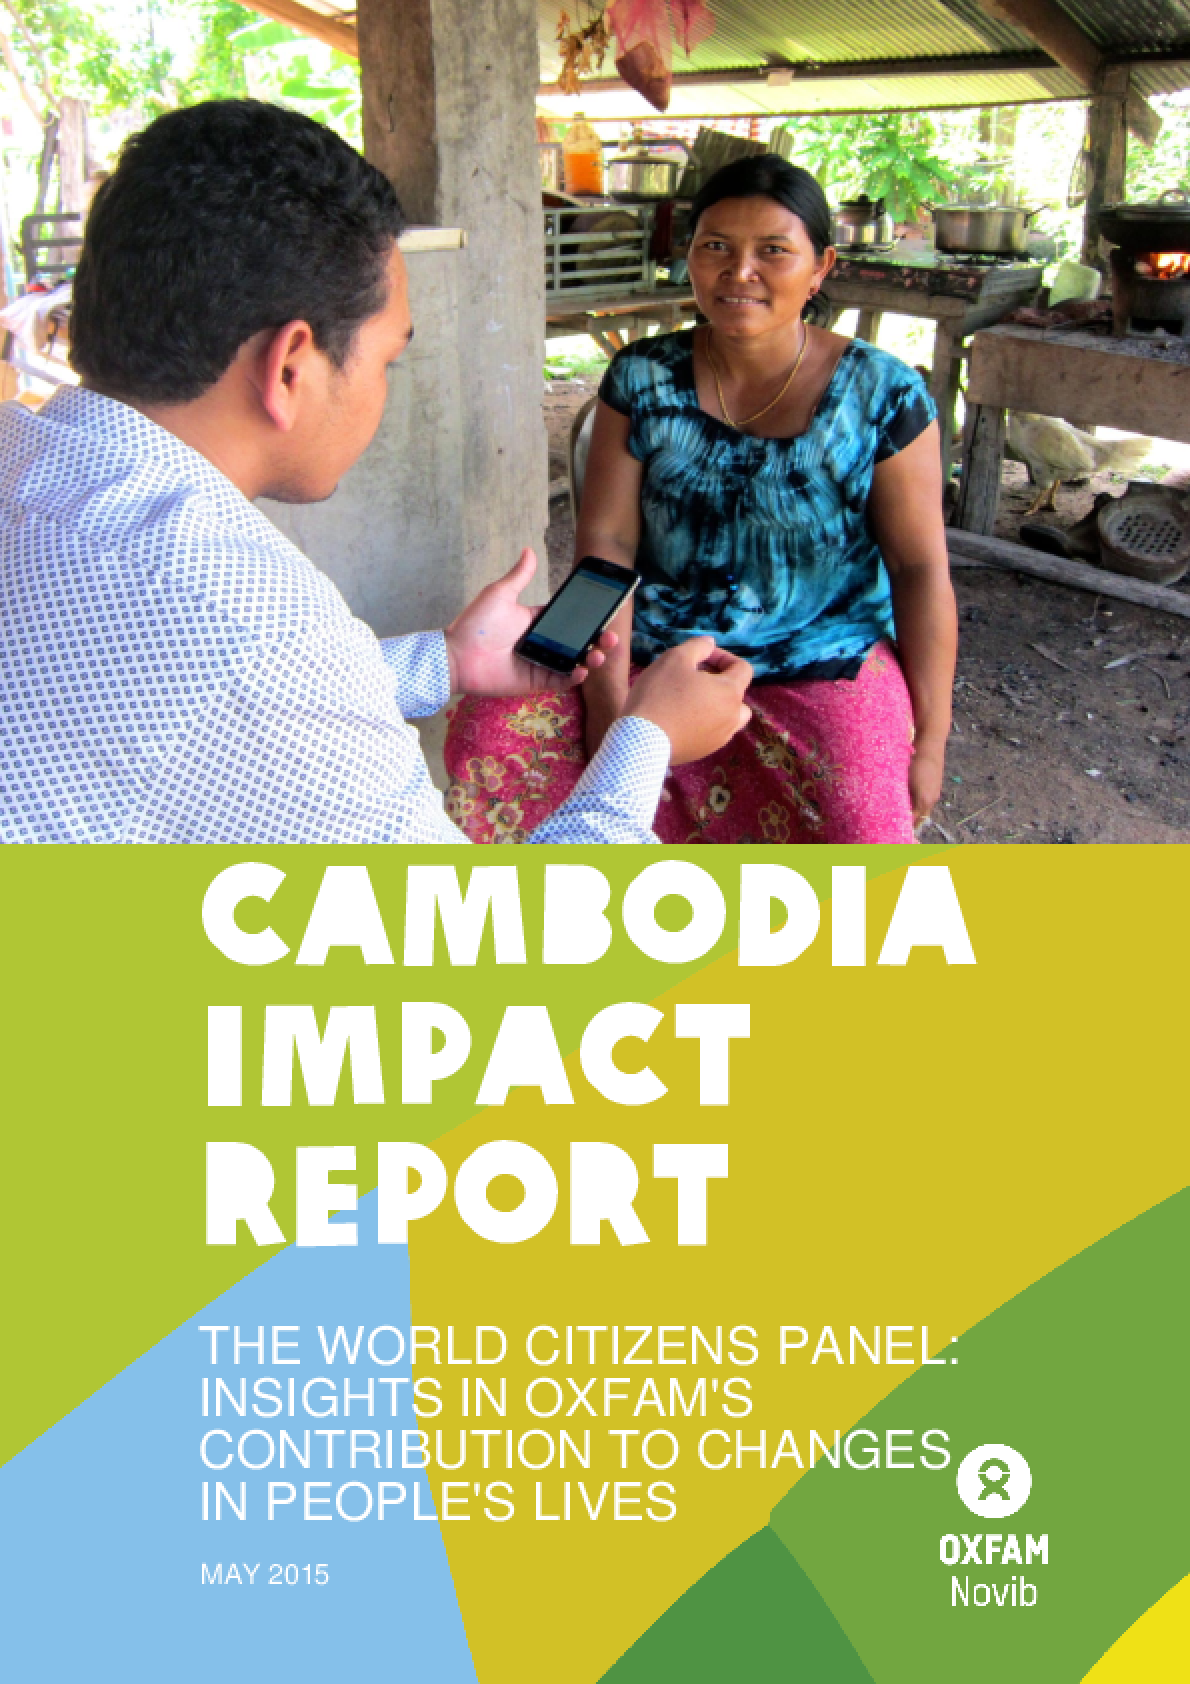 Cambodia Impact Report: The World Citizens Panel